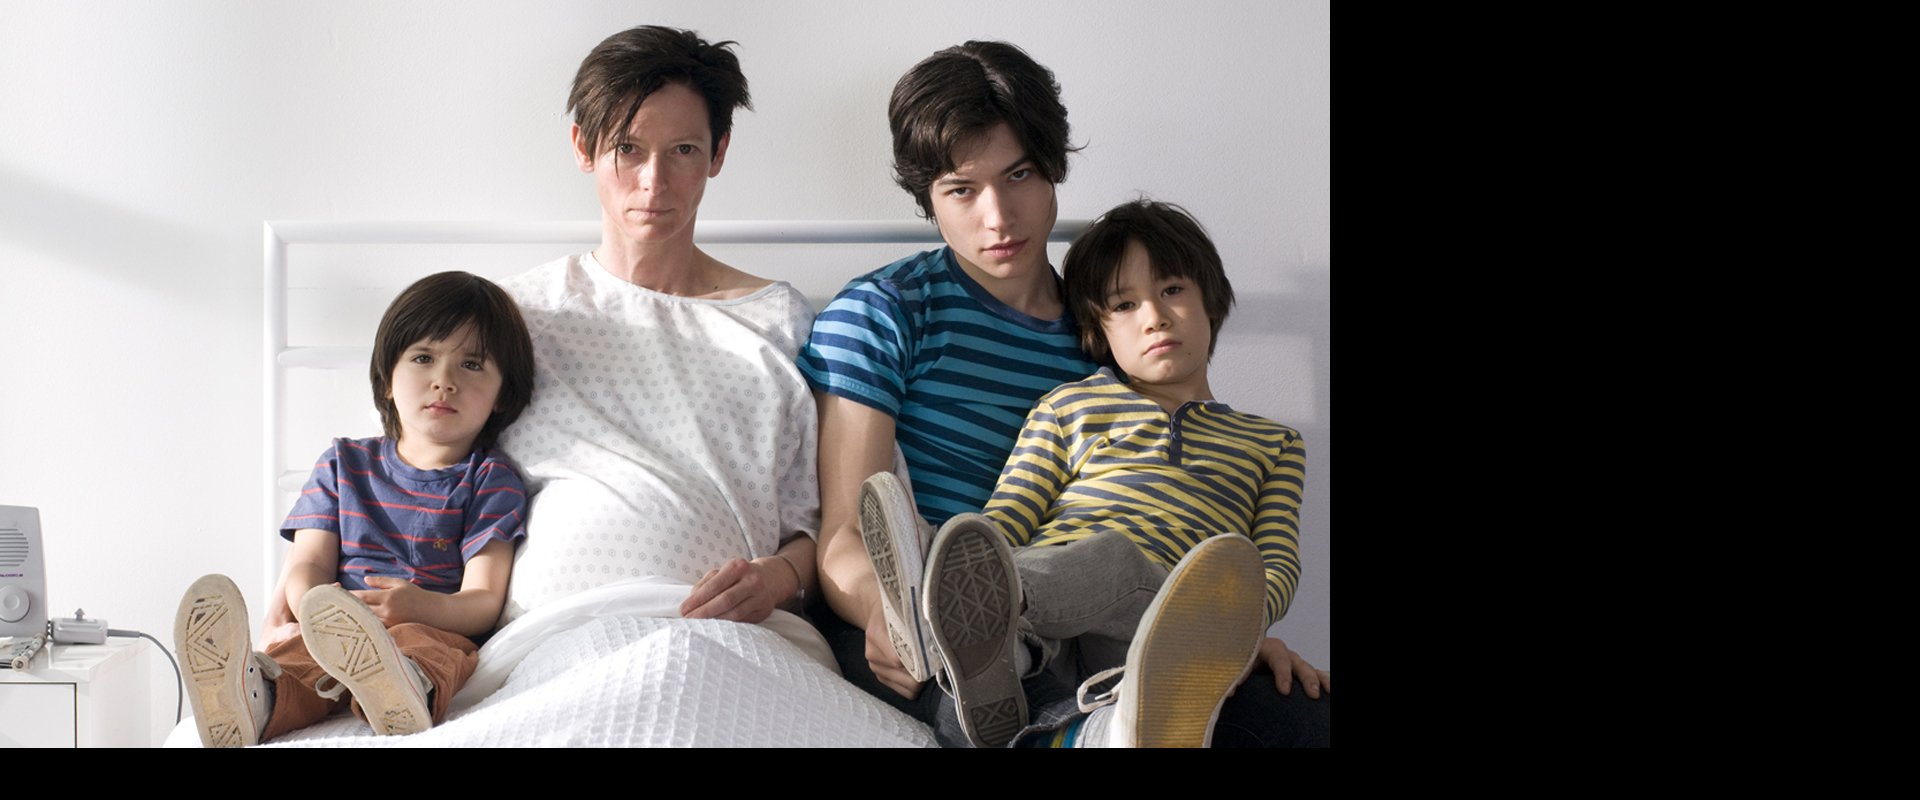 pregnant mother sitting on hospital bed with the 3 actors who play Kevin at different stages in his life